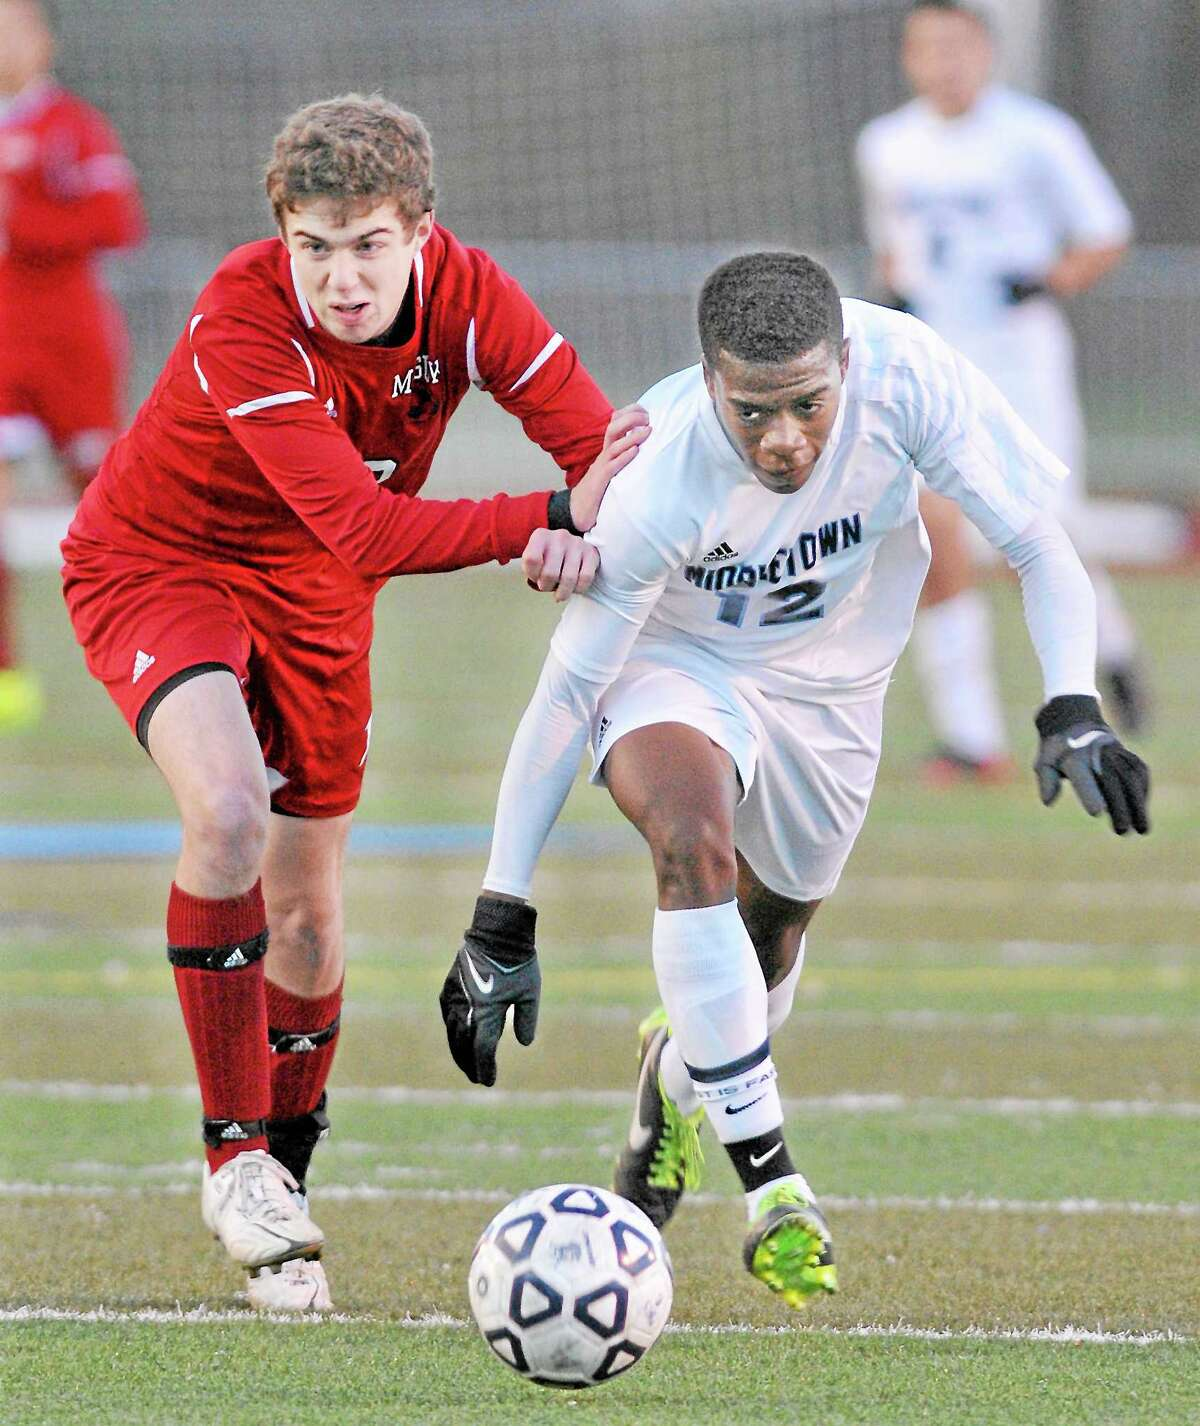 Middletown senior Lucas Saunders drives past Masuk junior Nicholas Zacchilli toward the Masuk goal Tuesday afternoon. Masuk defeated Middletown 2-0 in the CIAC Class L First Round.